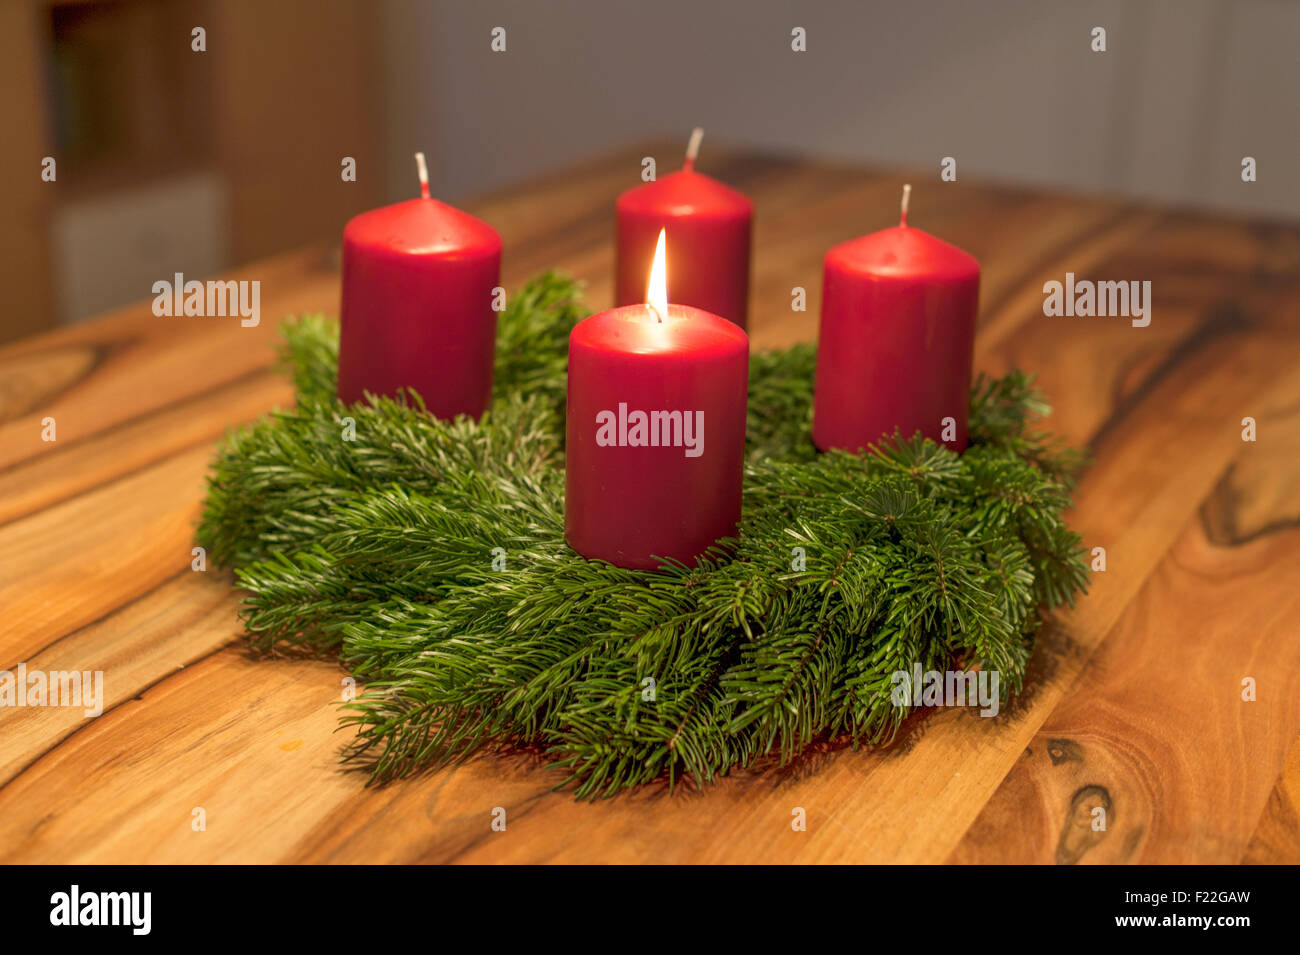 adventskranz mit einer leuchtenden kerze stock photo. Black Bedroom Furniture Sets. Home Design Ideas